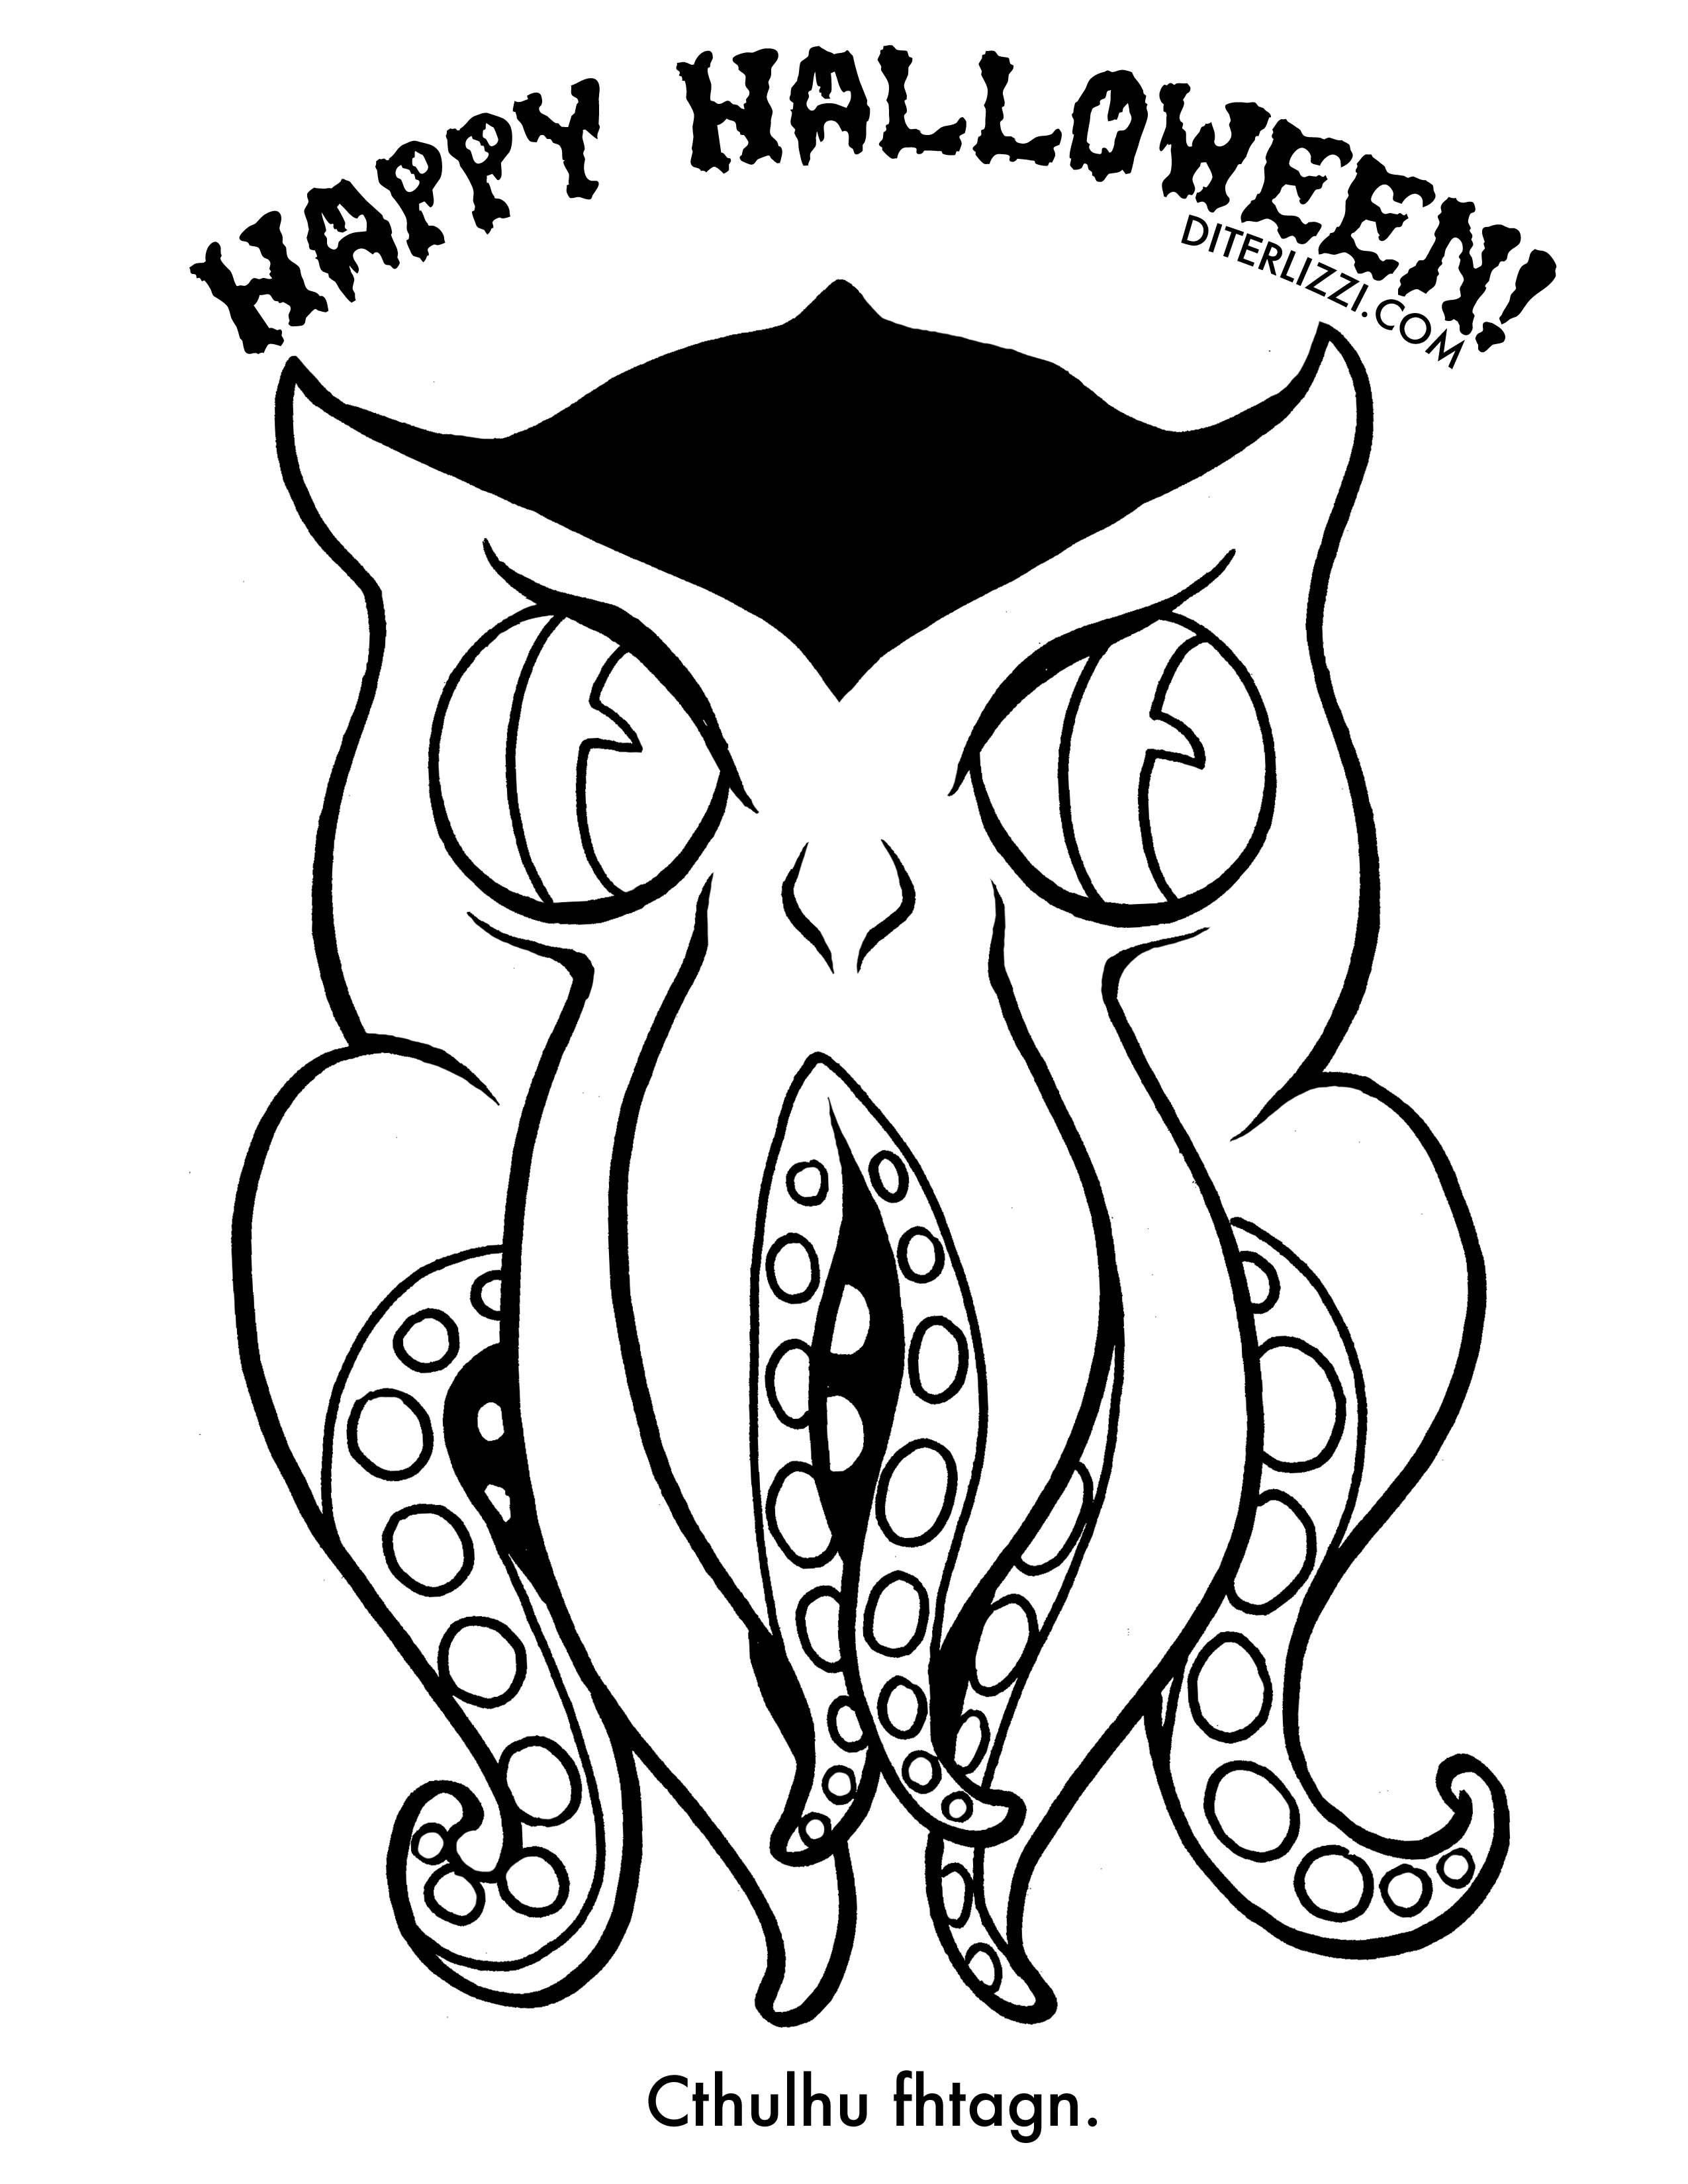 Cthulhu.jpg (2550×3300) | Coloring Pages & Paper Dolls | Pinterest ...